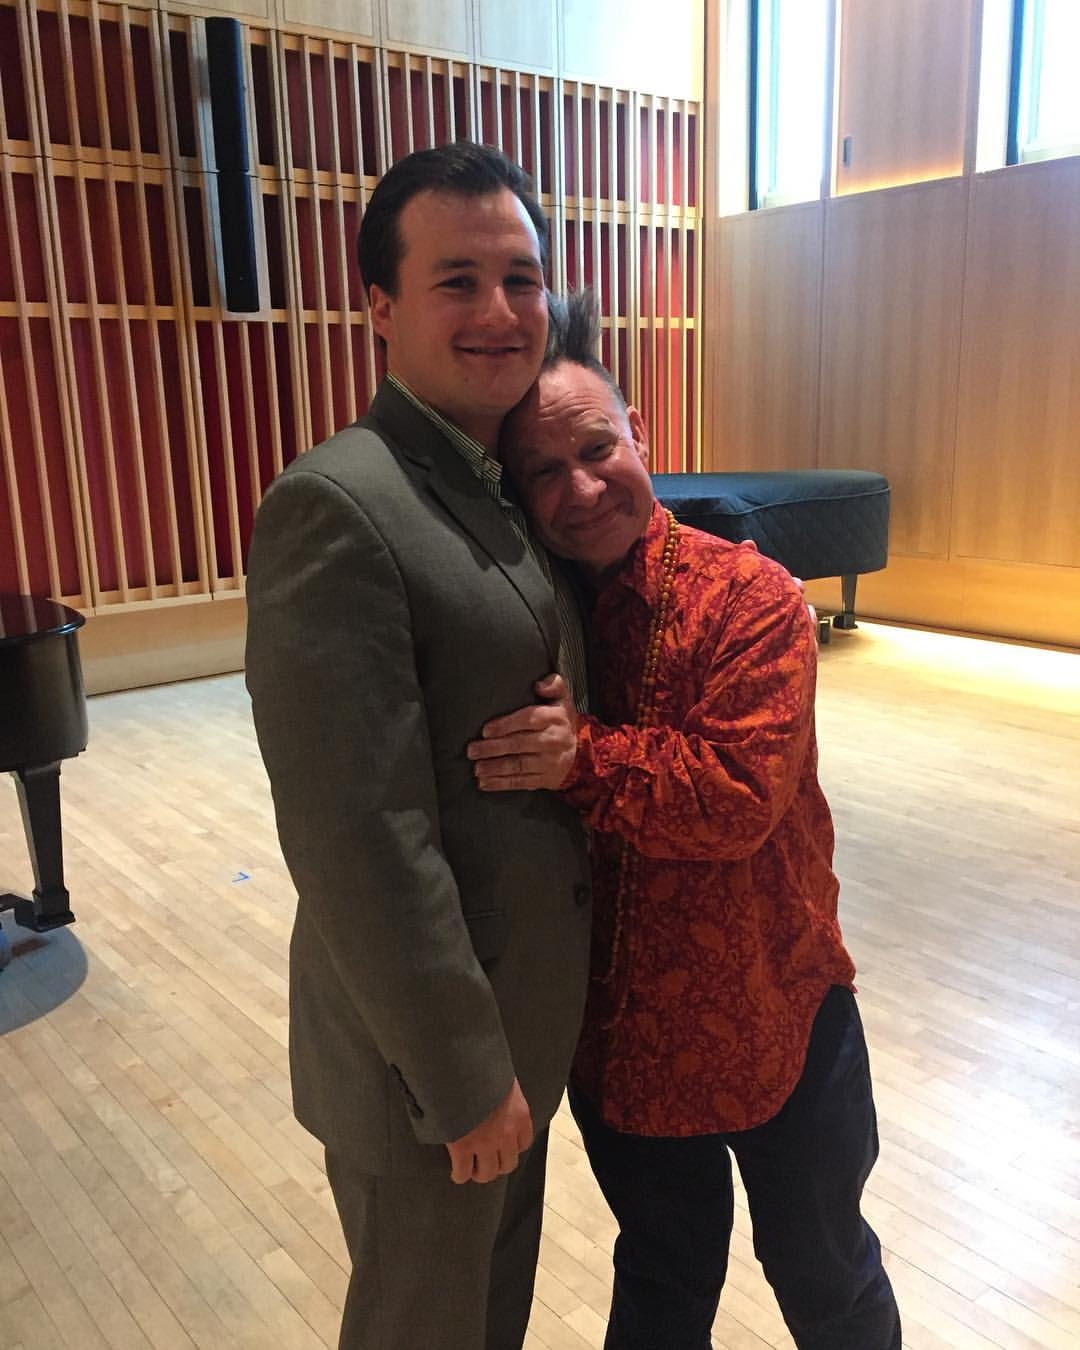 Eric with Peter Sellars after a masterclass.